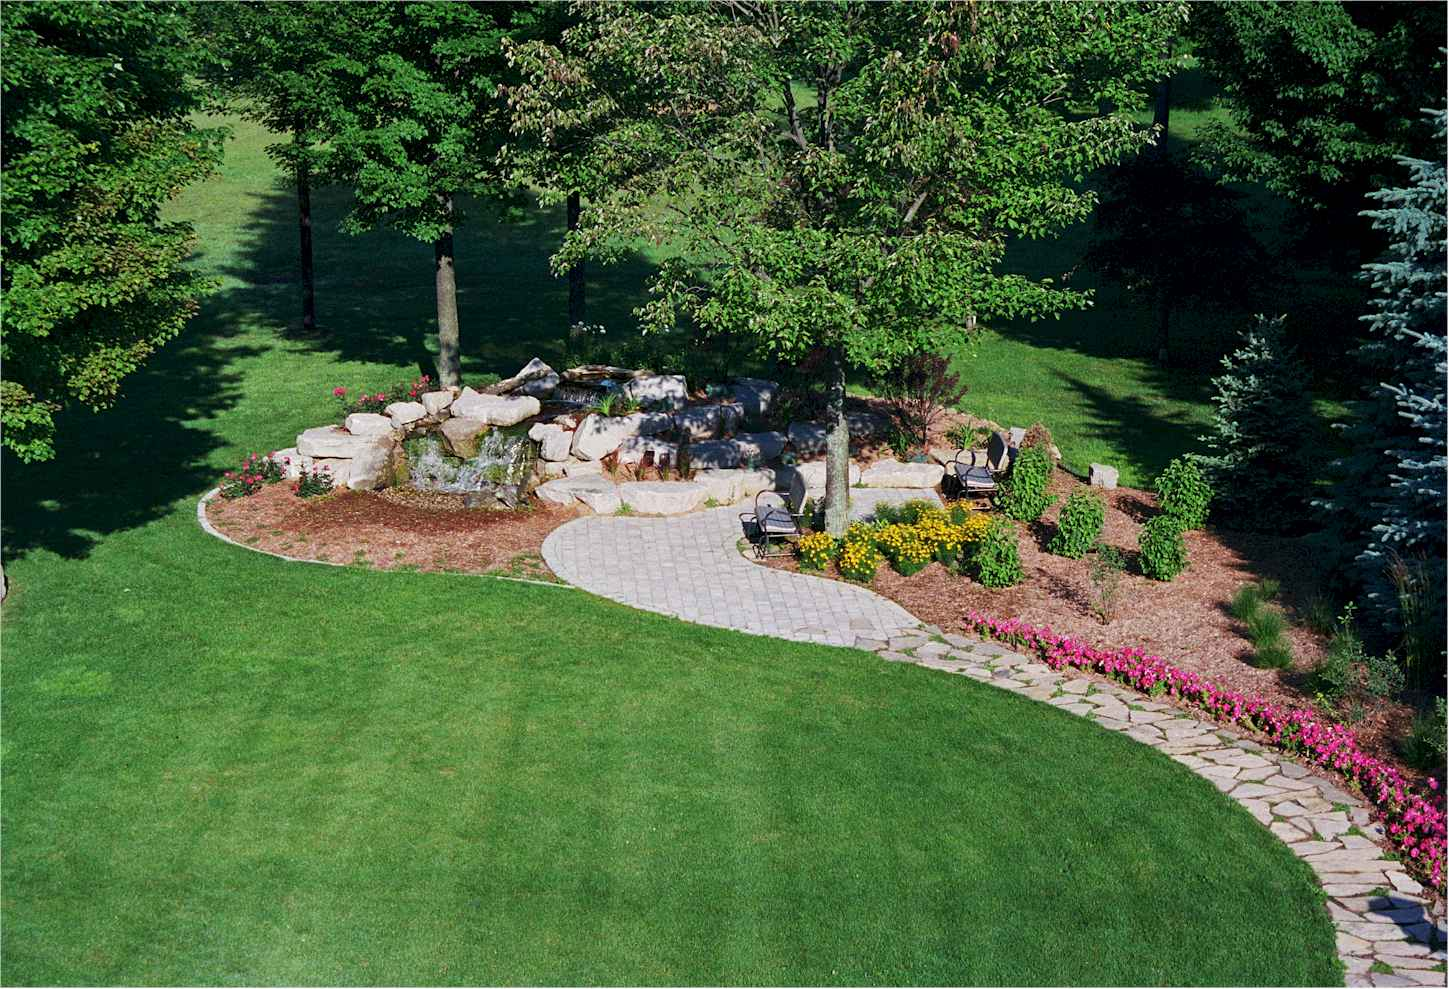 5 landscaping ideas to wow the neighbors for Landscape garden design ideas